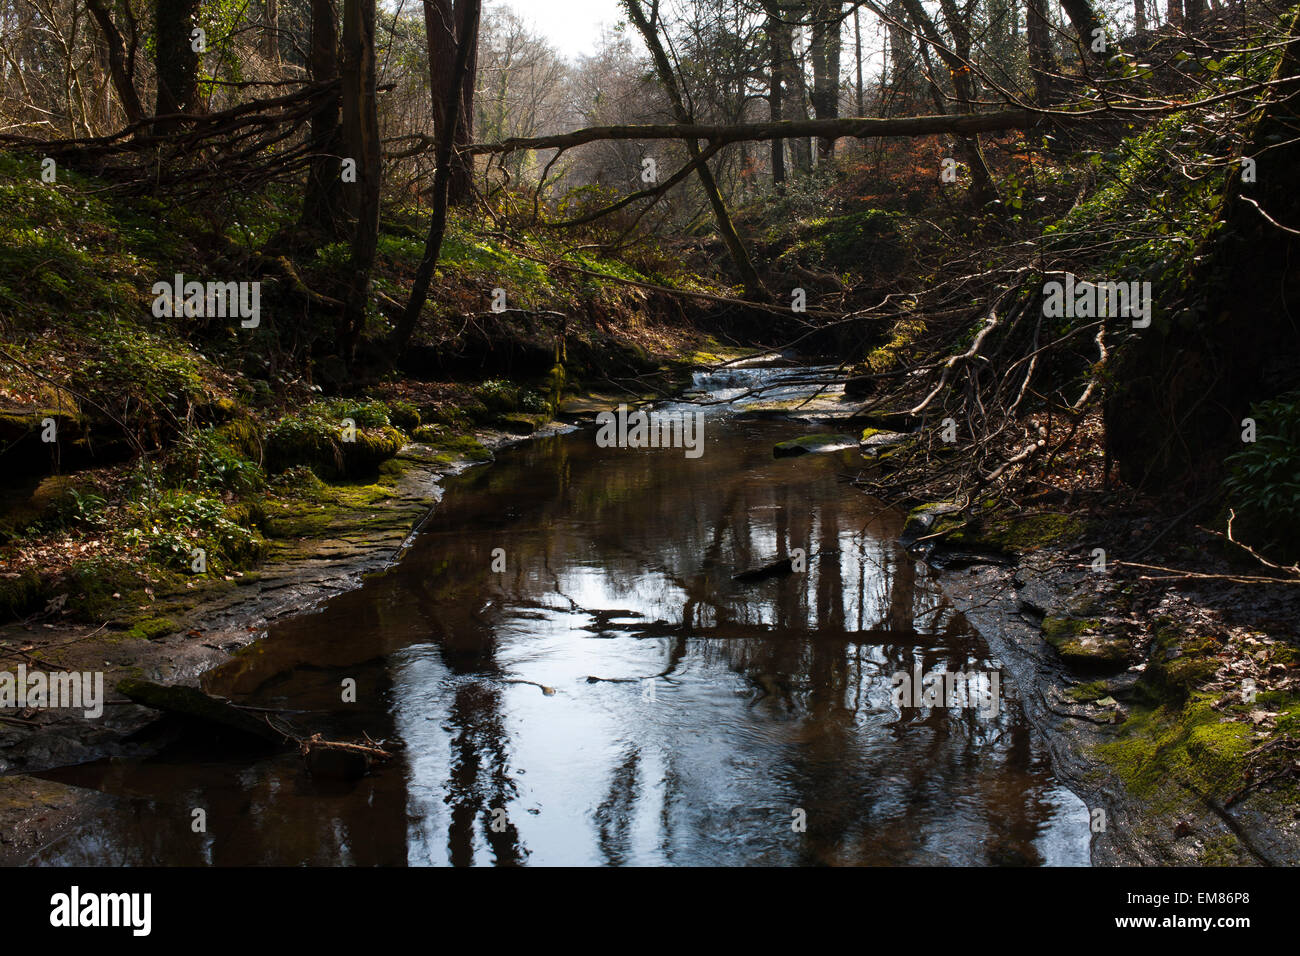 The Pont Burn River and Woods close to Hamsterley Mill in County Durham. - Stock Image